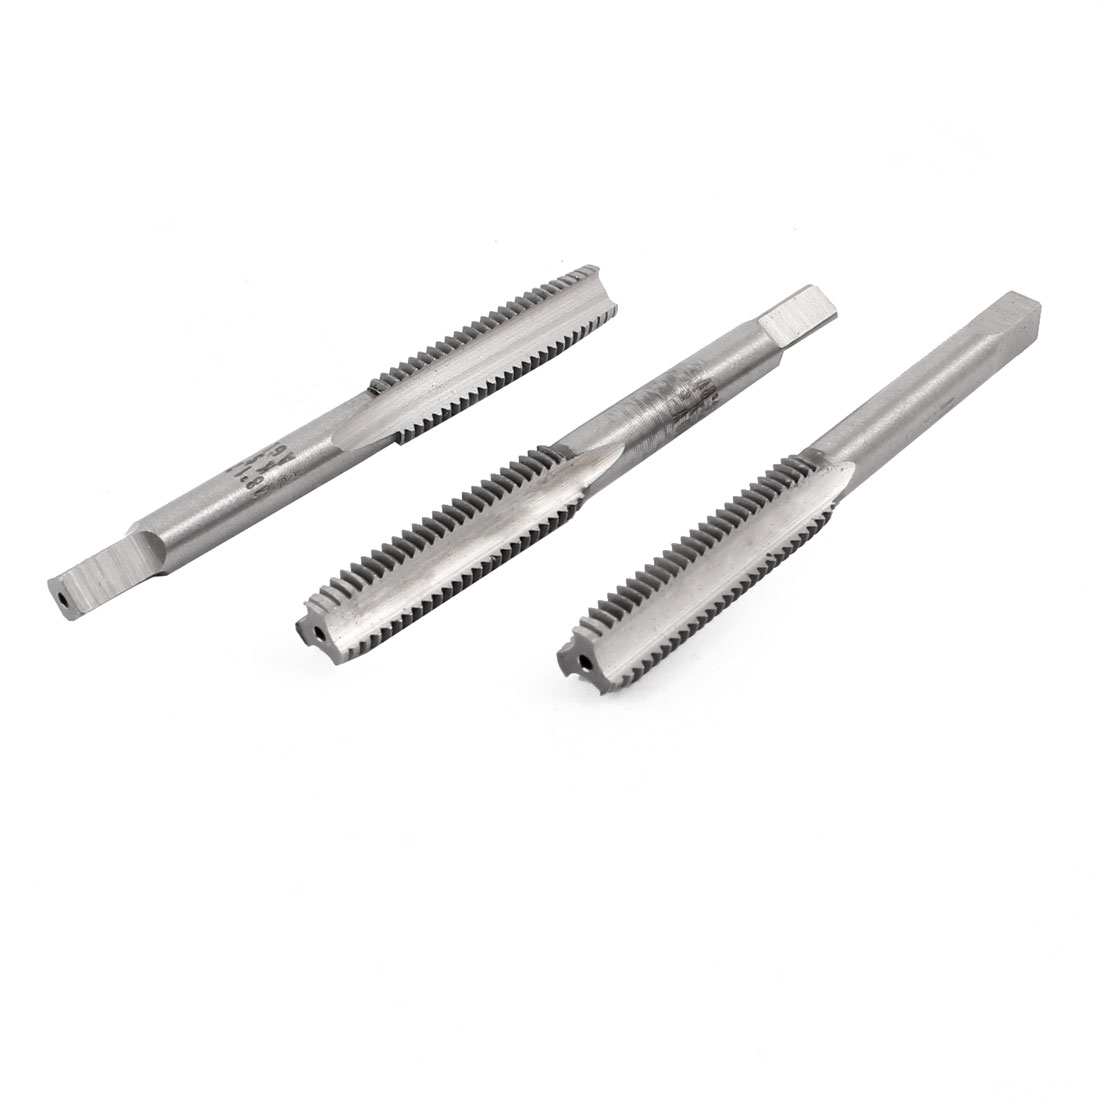 3 Pcs 6.5mm x 1.5mm Taper and Metric Tap M6.5 x 1.5mm Pitch